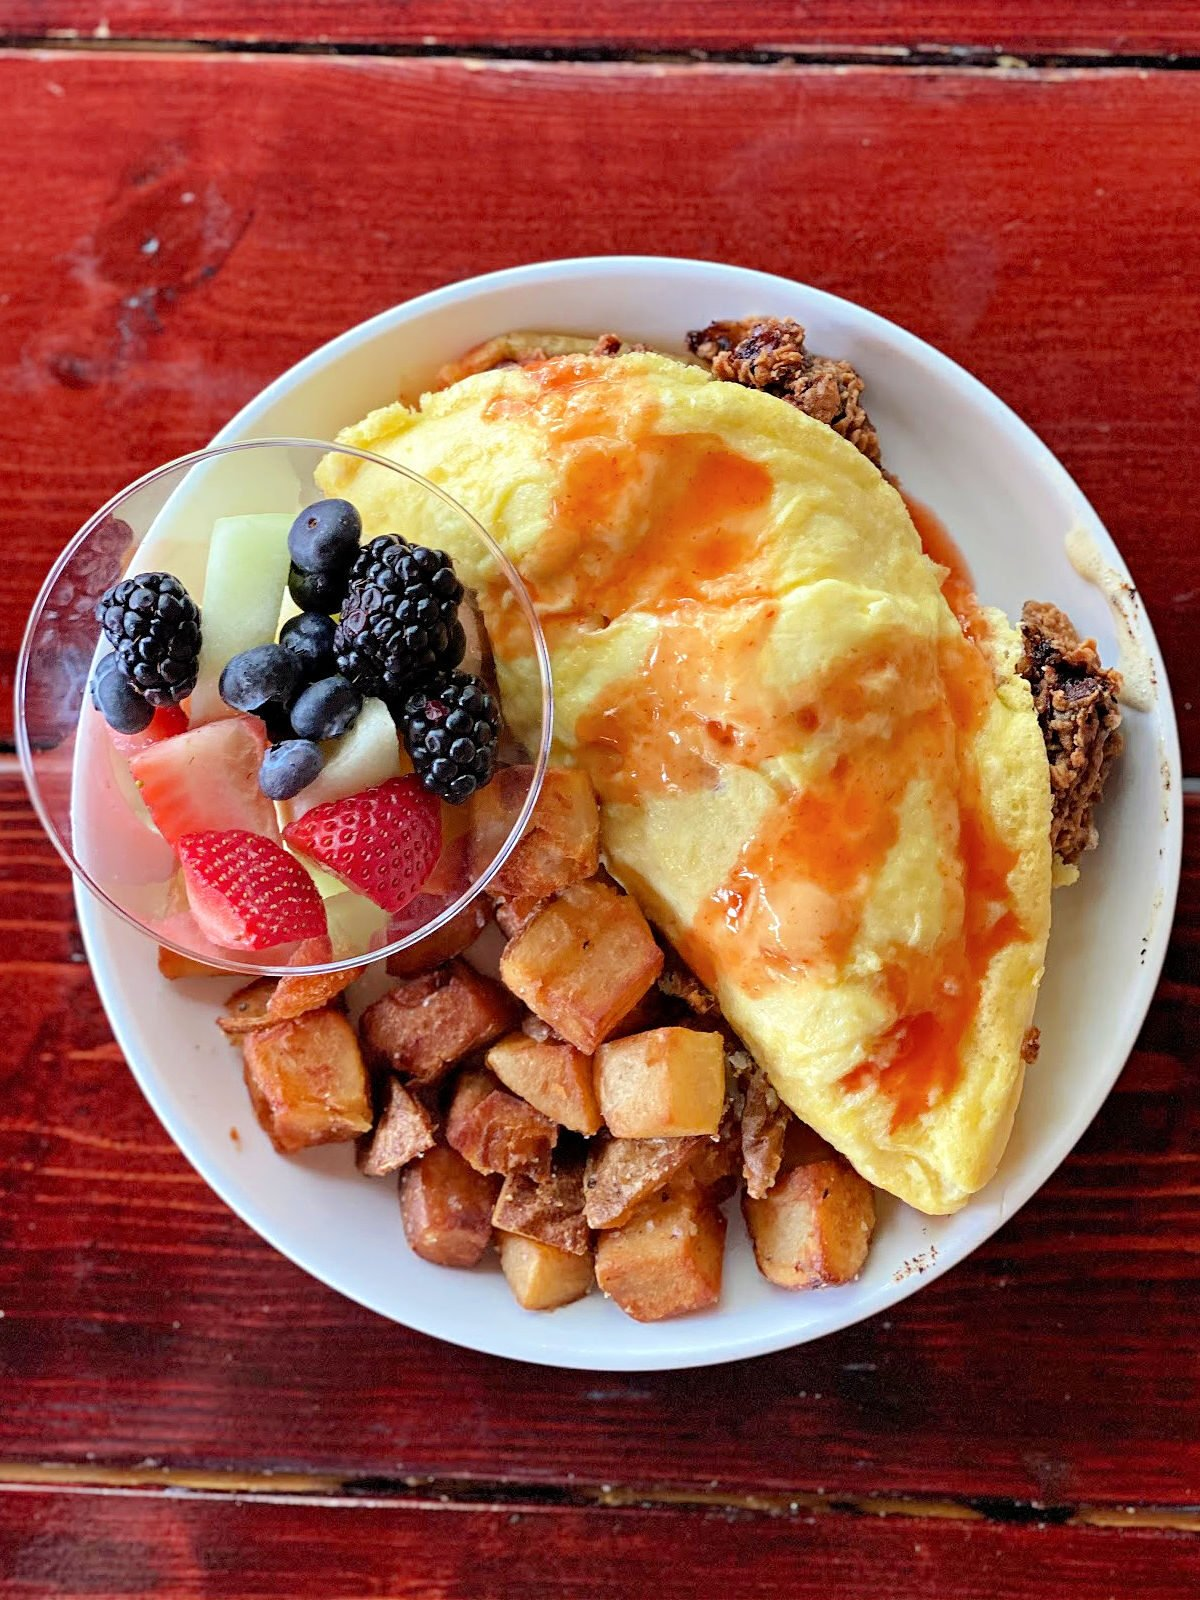 Chicken omelette with waffle pieces, roasted potatoes, and cup of fruit.